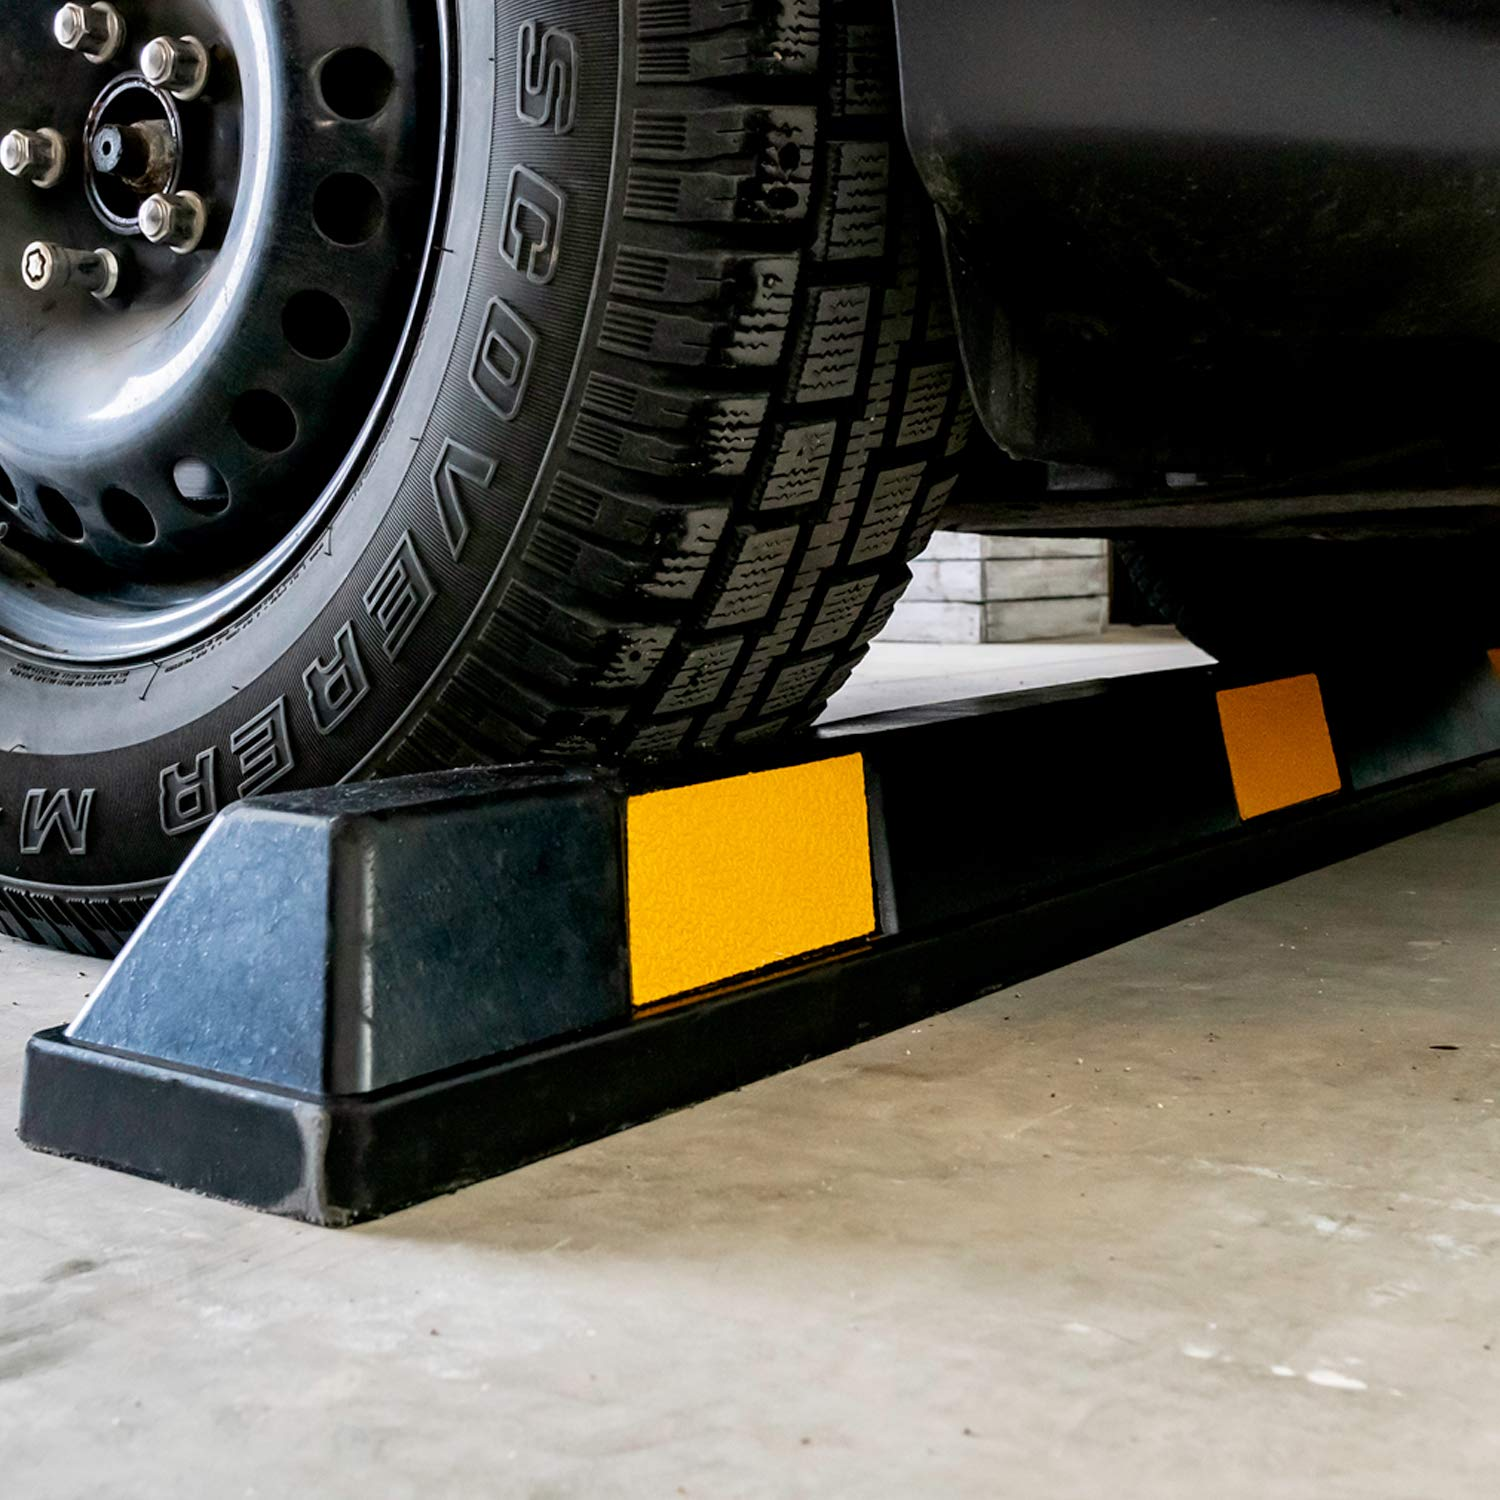 Fullstop Vehicle Parking Block, Black Commercial Heavy Duty Rubber Curb with 8 ScatterGlass Reflective Yellow Targets for Car, Truck, RV and Trailer Stop Aid, 72 Inches Long x 4 Inches High by Fullstop (Image #2)